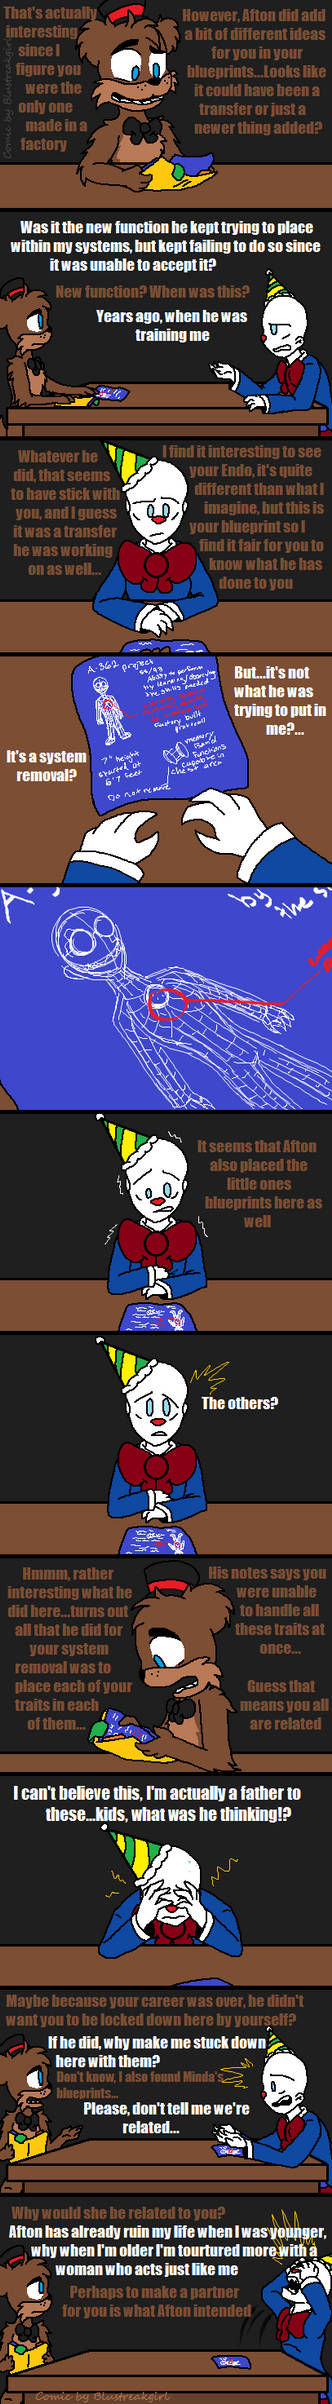 Forgotten Judgement (FNAF Comic) Pt.6 by Blustreakgirl